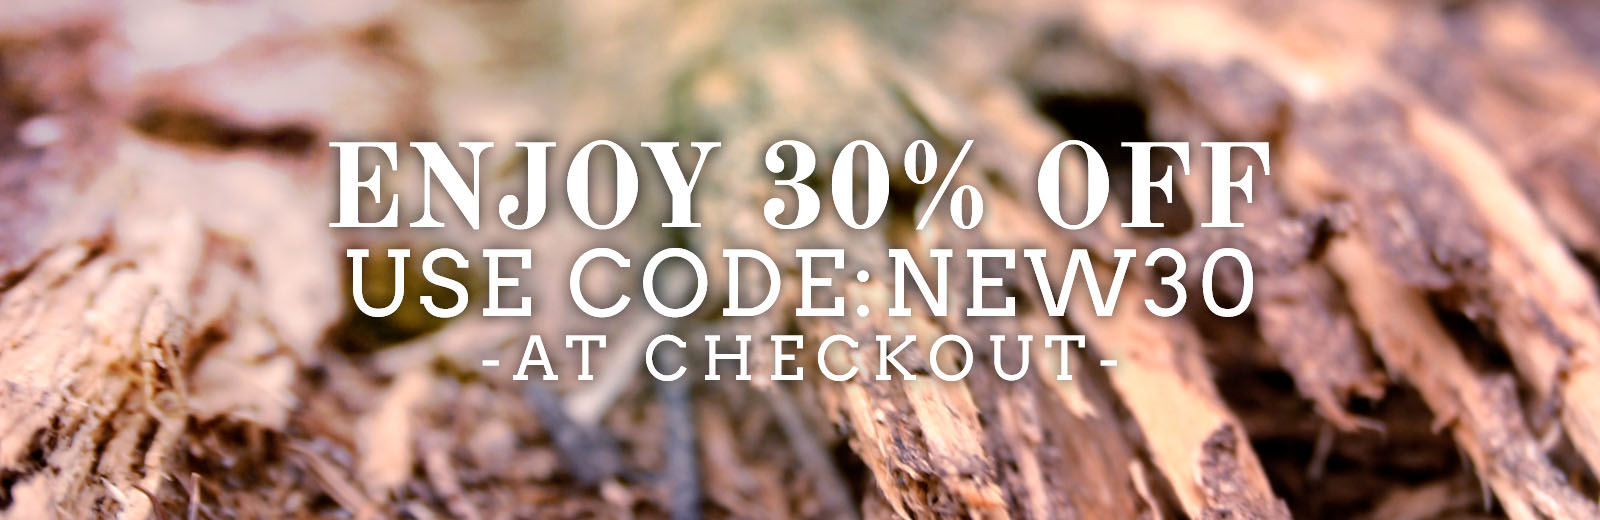 30% Off - NEW30